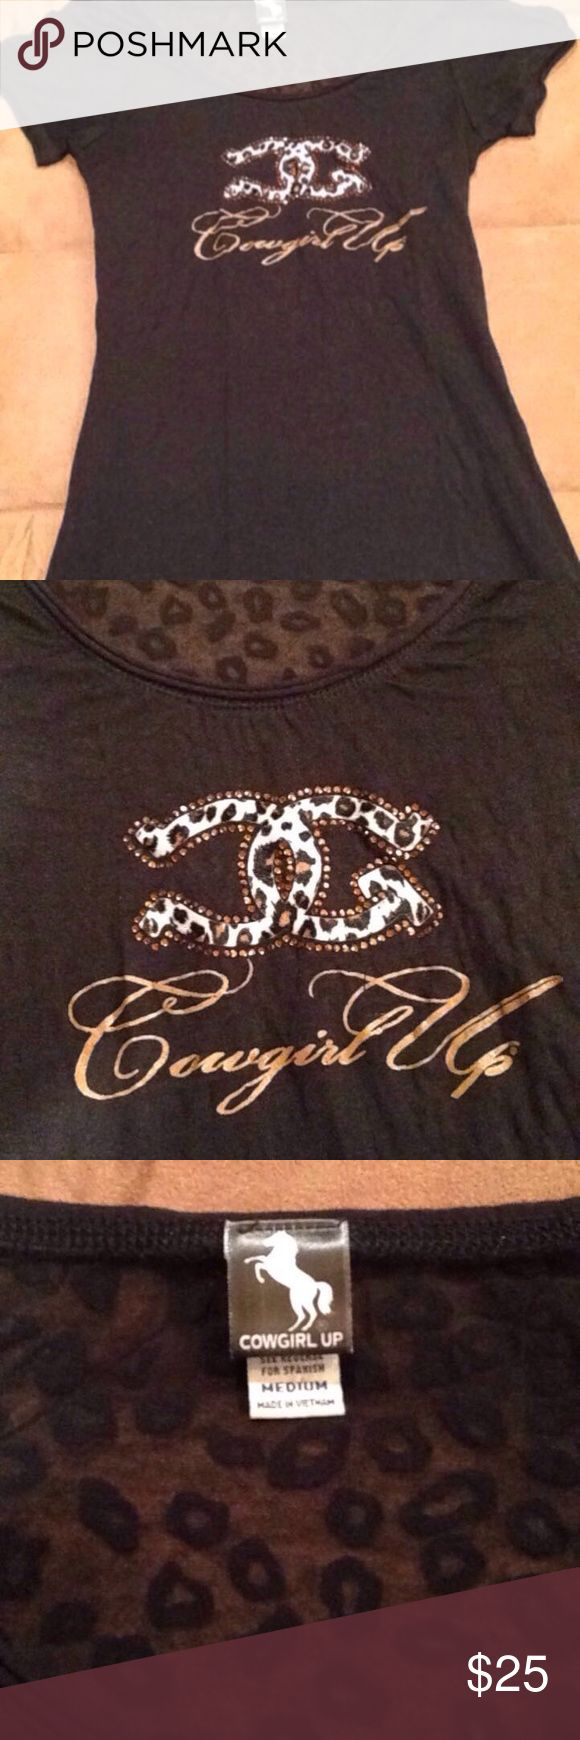 Cowgirl Up leopard shirt Cute Cowgirl Up shirt with leopard burn out. Great condition Cowgirl Up Tops Tees - Short Sleeve